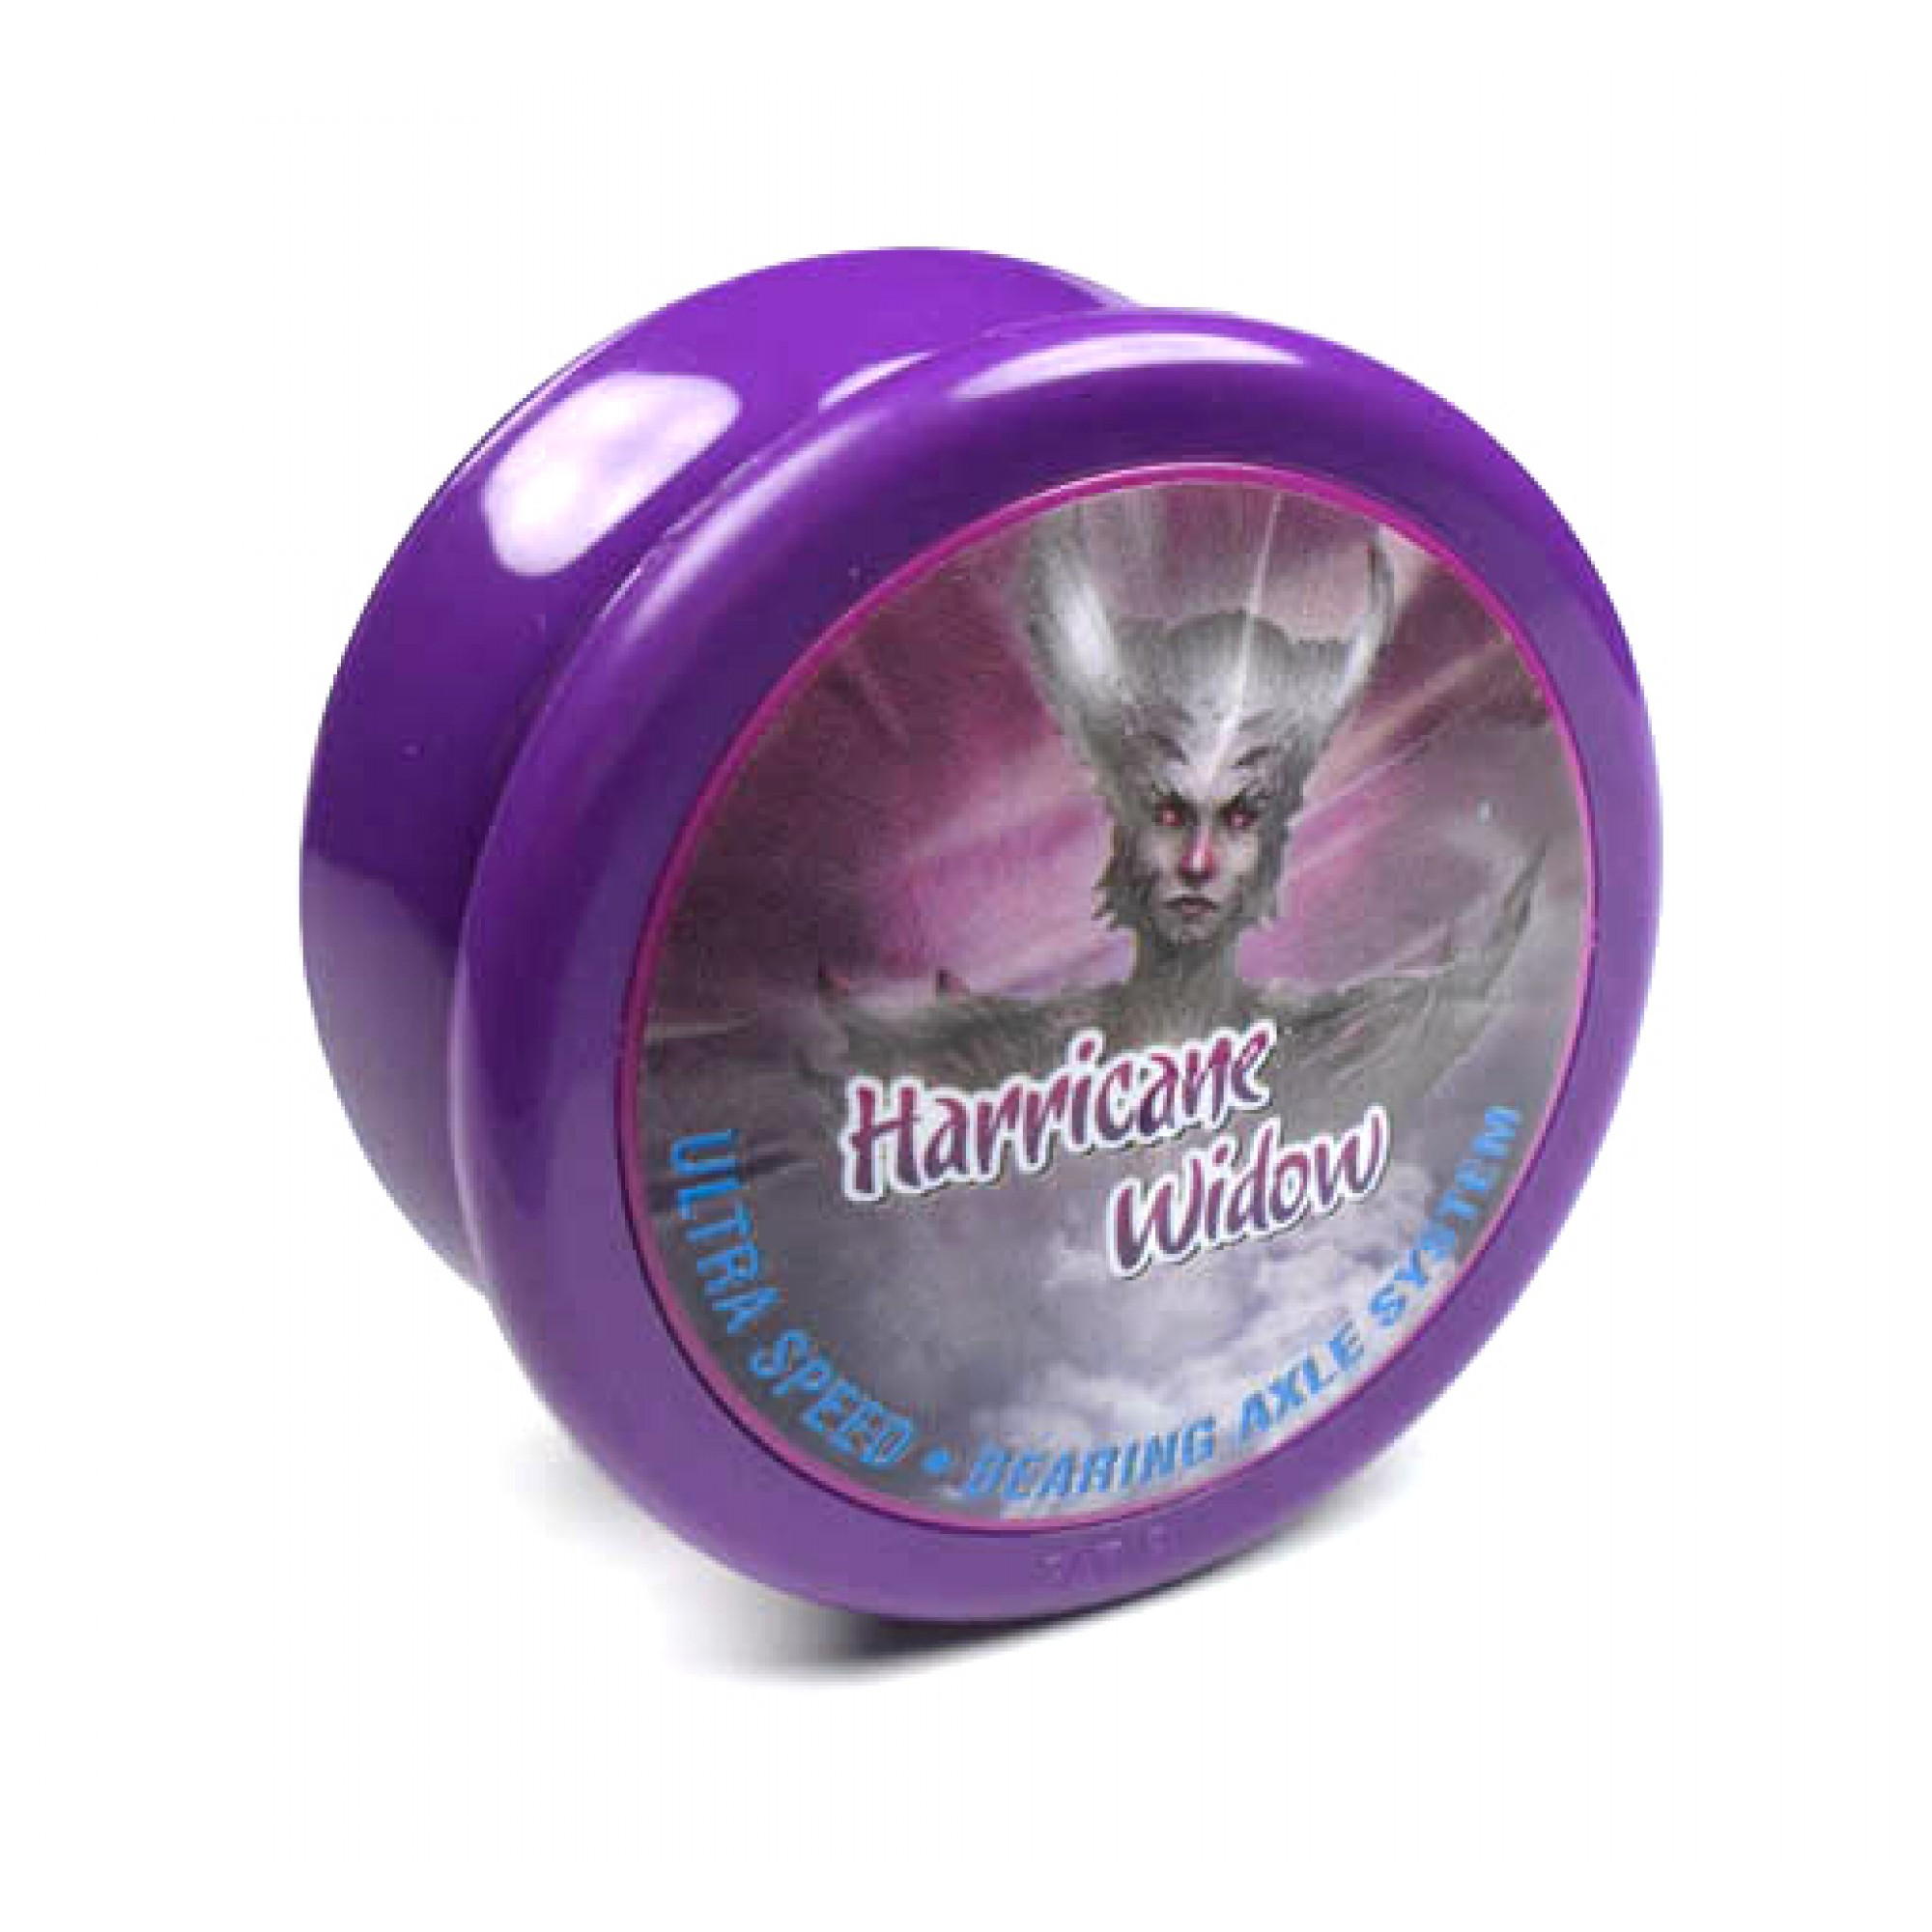 Whirl Monster Ball Bearing Yoyo (Harricane Widow)